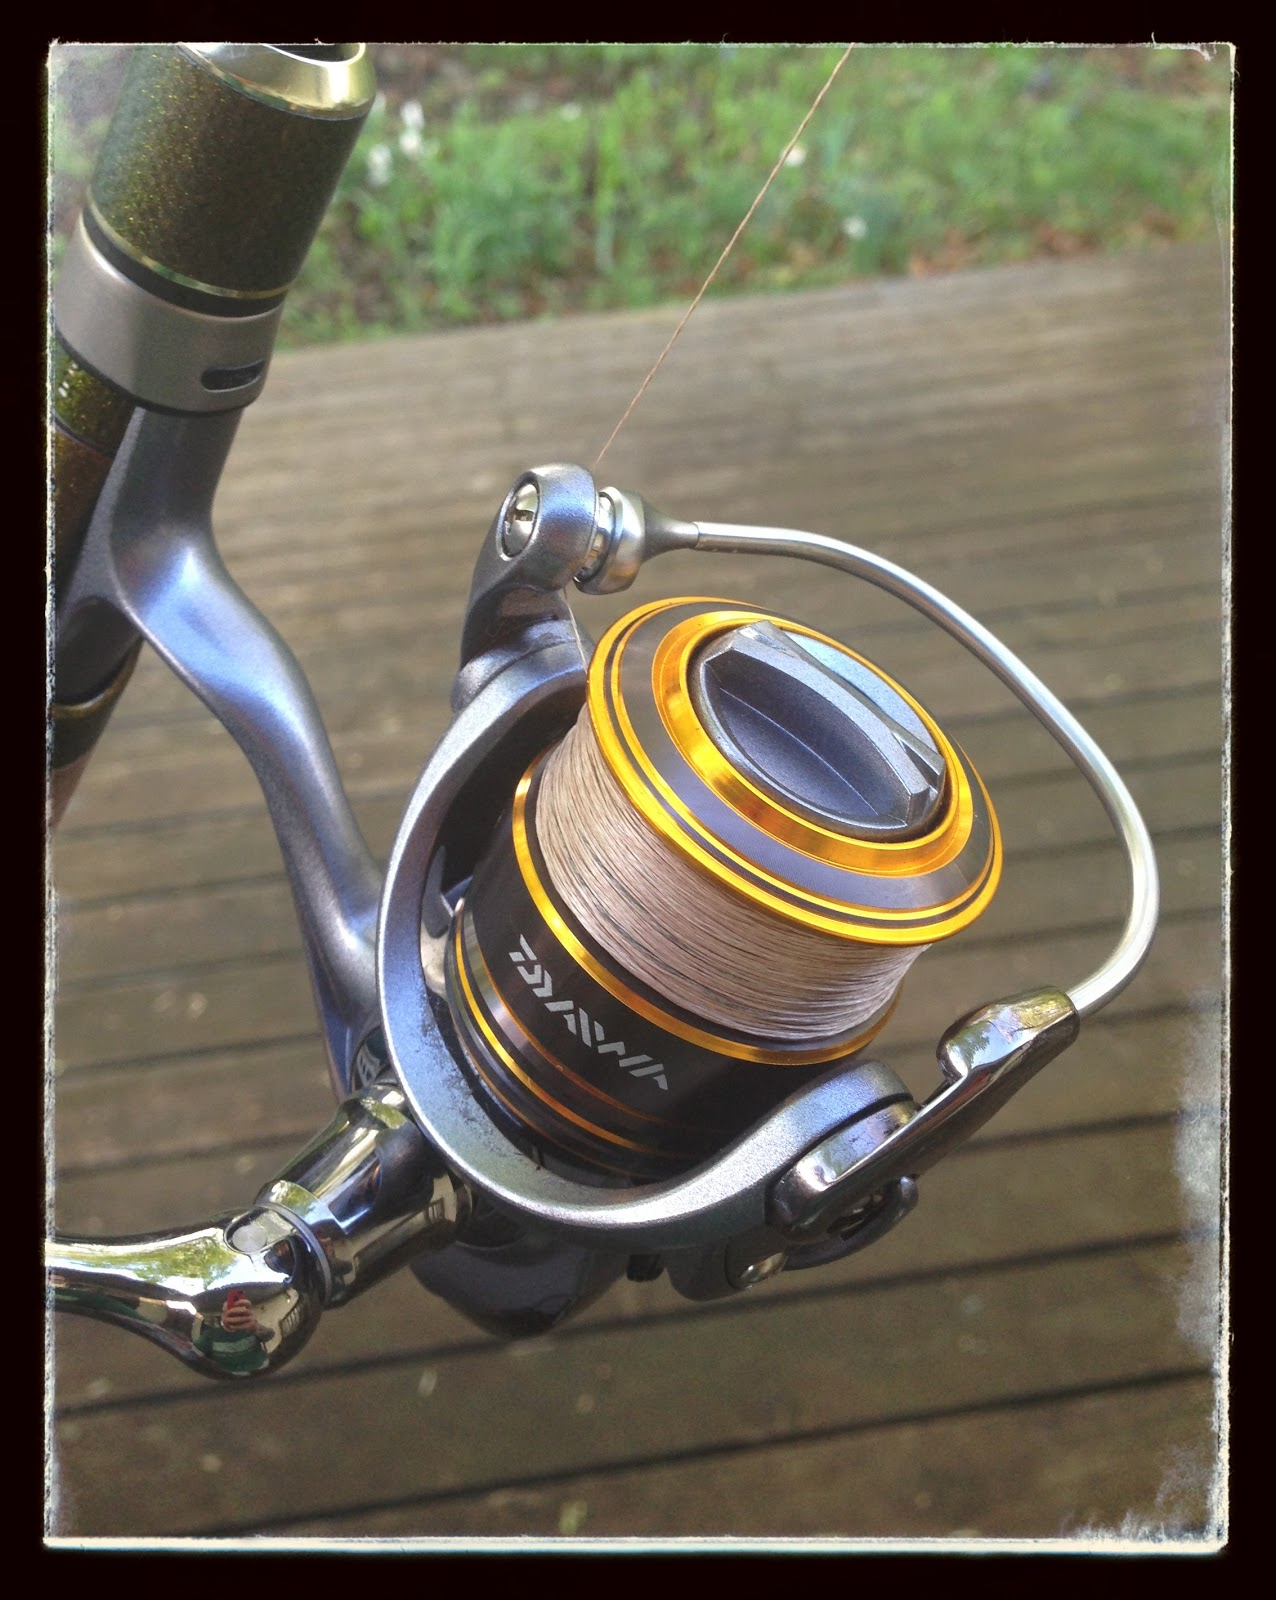 6ae4abdf2a4 ... that in mind I took the Daiwa Lexa 2000 for a test drive and pit it  against one of the industries best.. the Shimano Stradic, and here is what  I found.